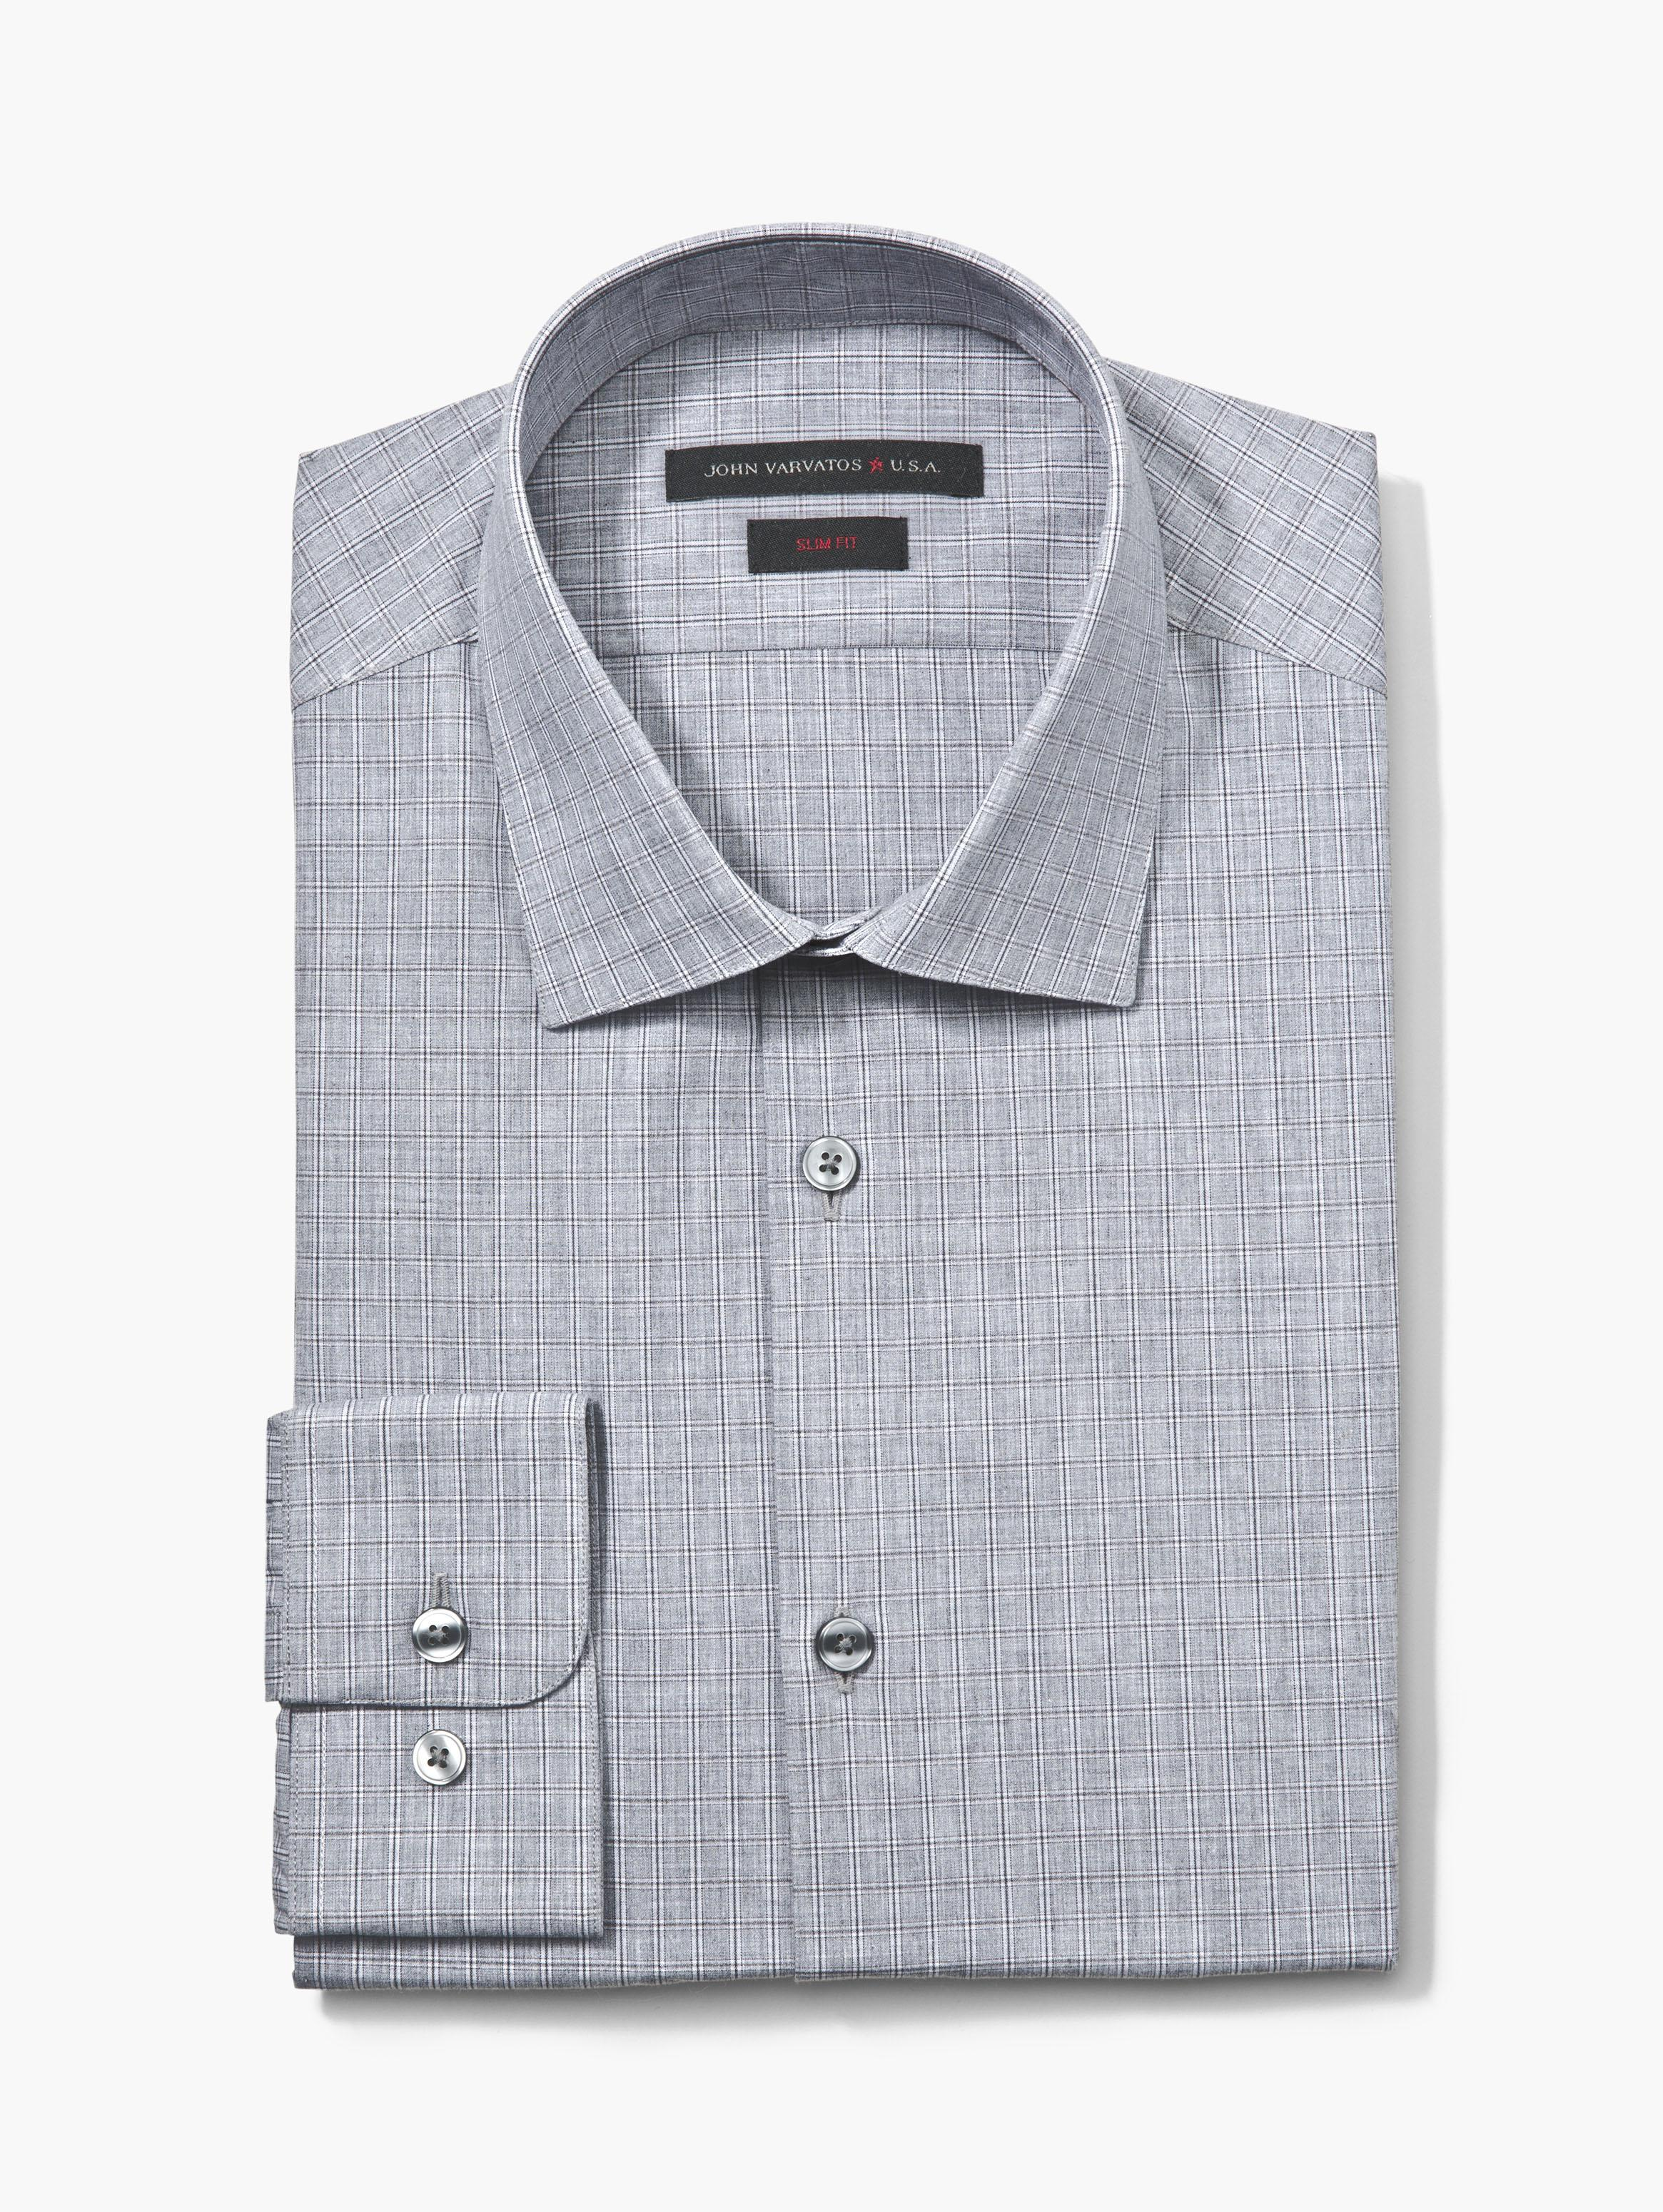 SLIM FIT DRESS SHIRT WITH UNDERPLACKET TRIM